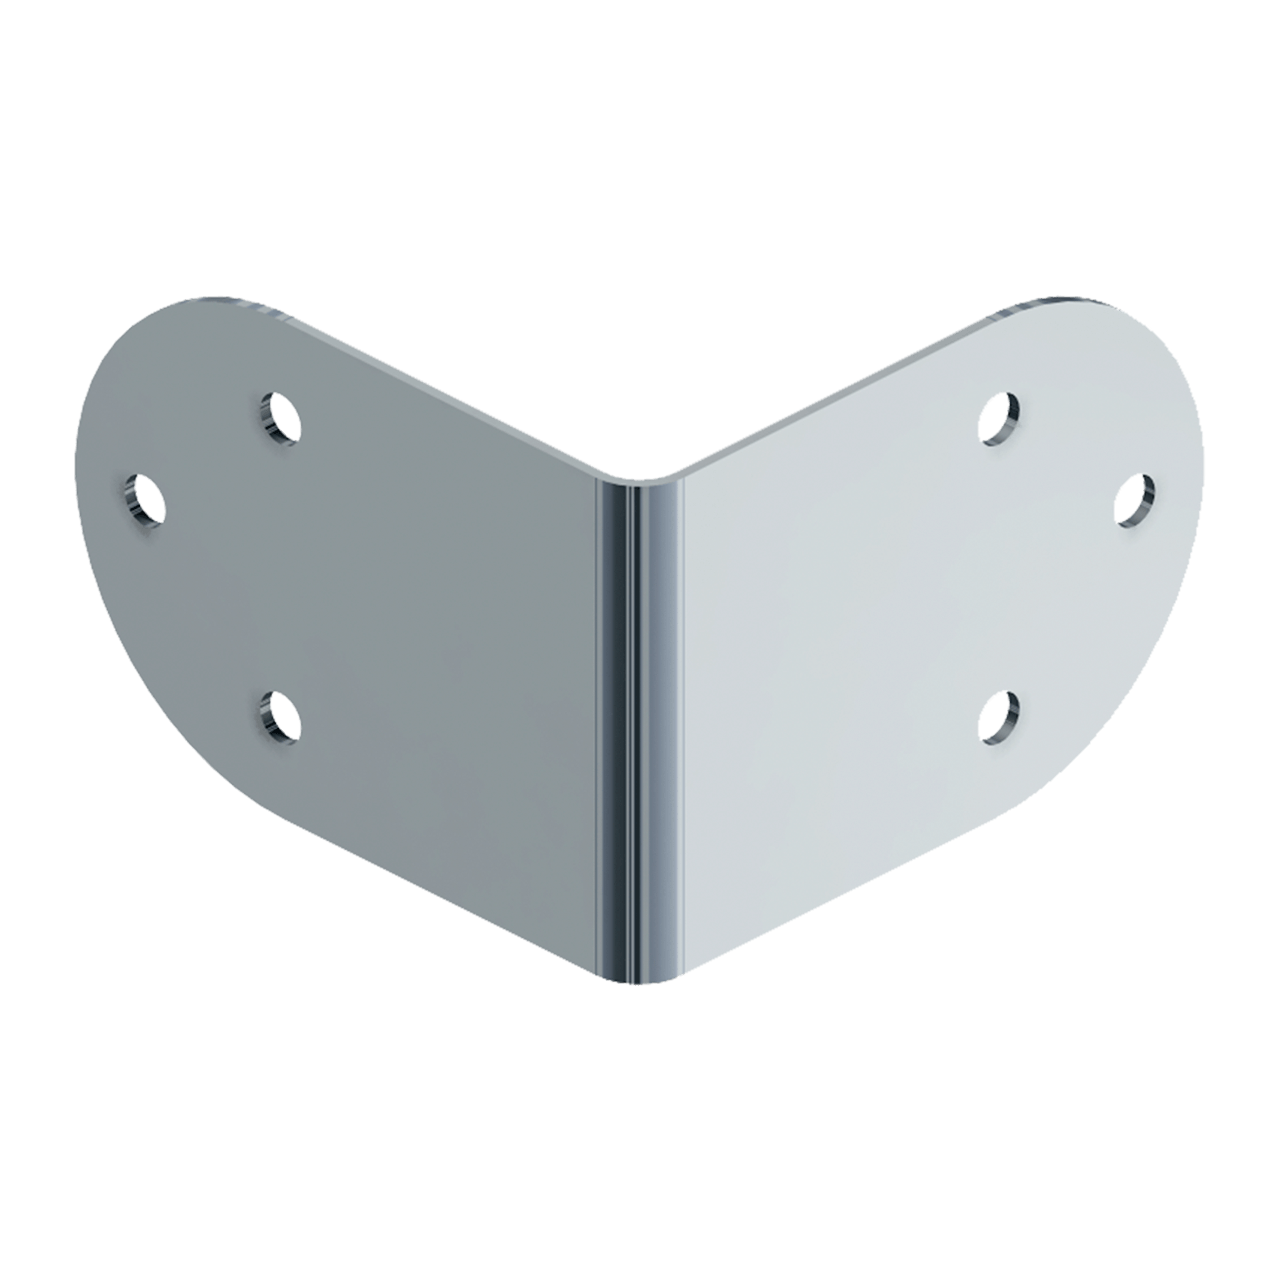 Extra Large Six-Hole Clamp, 3/4 view